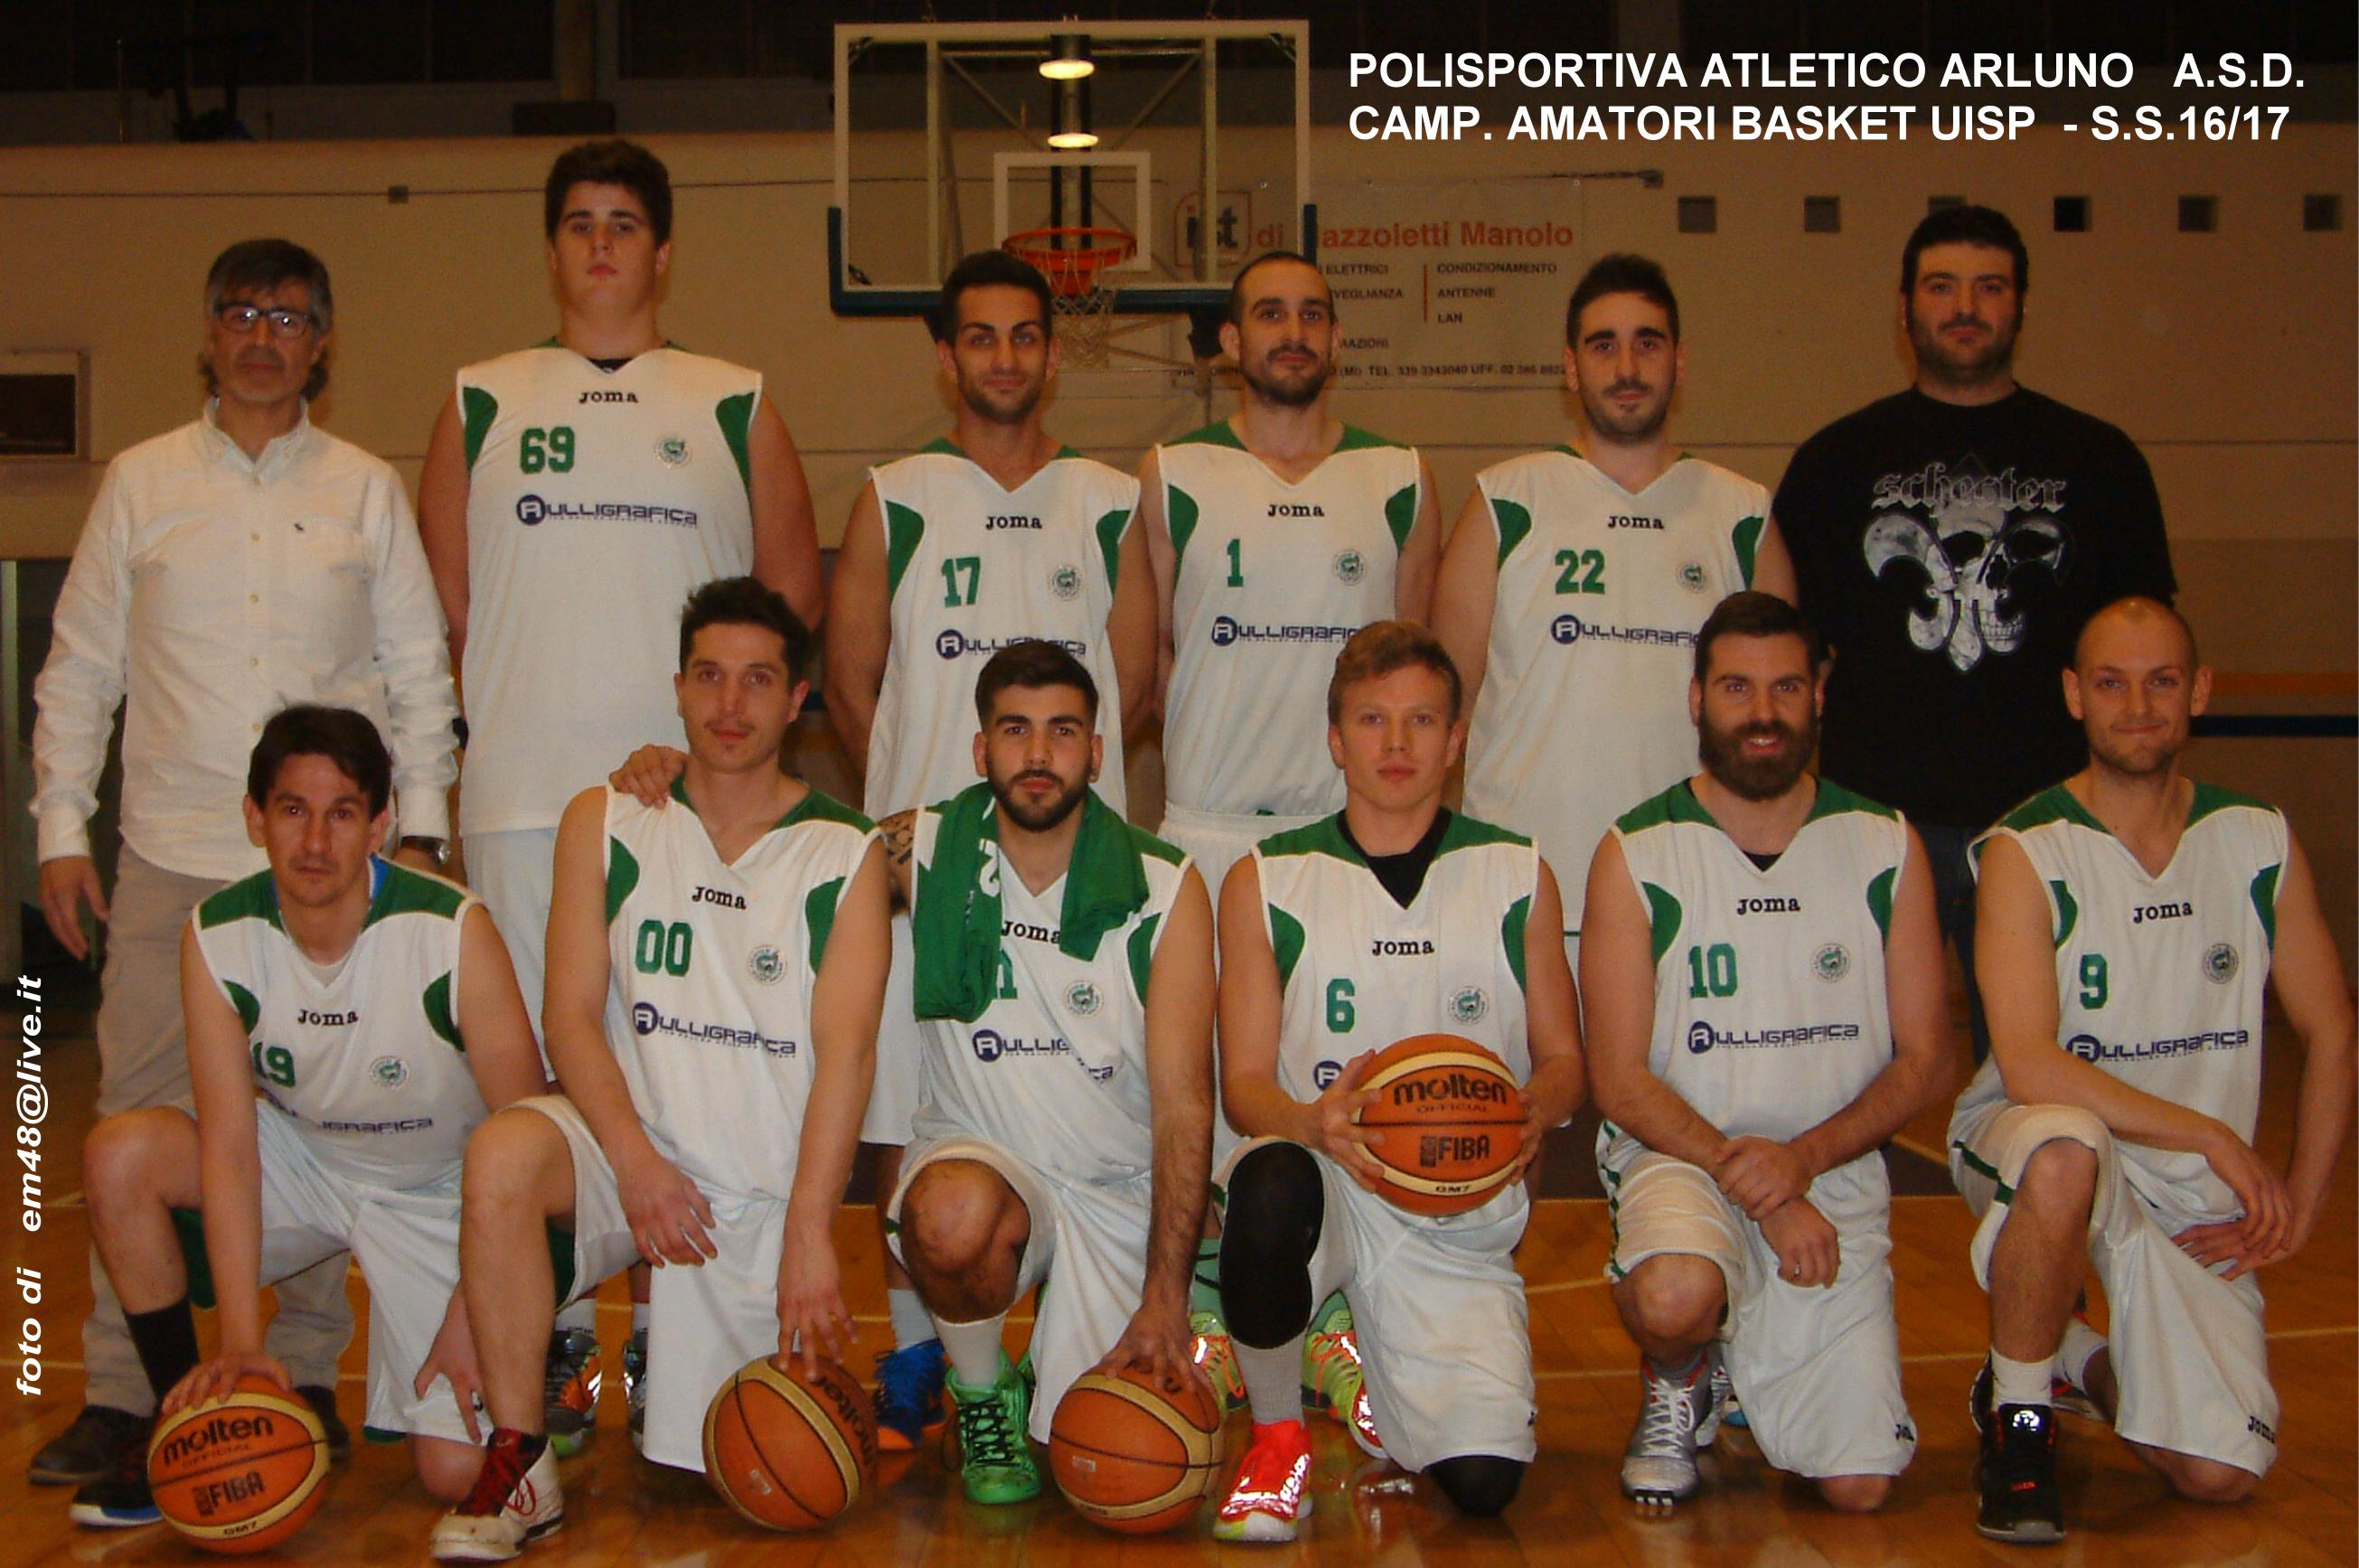 Uisp Basket Milano Calendario.Basket Uisp Amatori 16 17